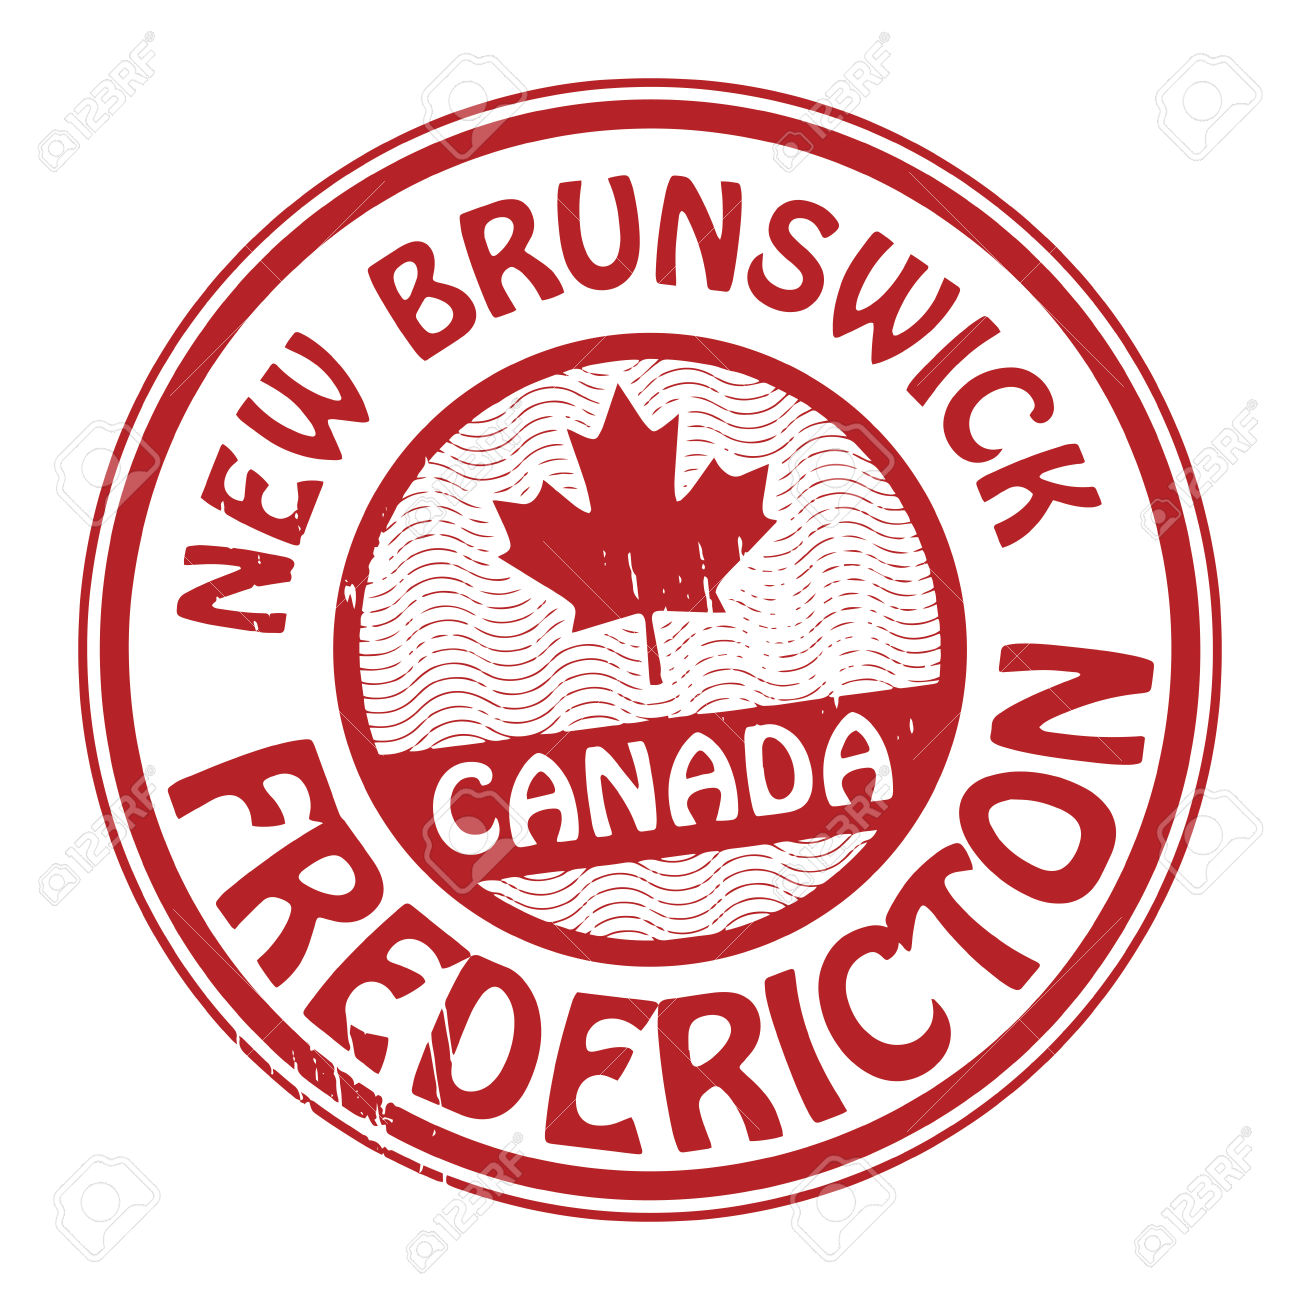 250 New Brunswick Stock Vector Illustration And Royalty Free New.